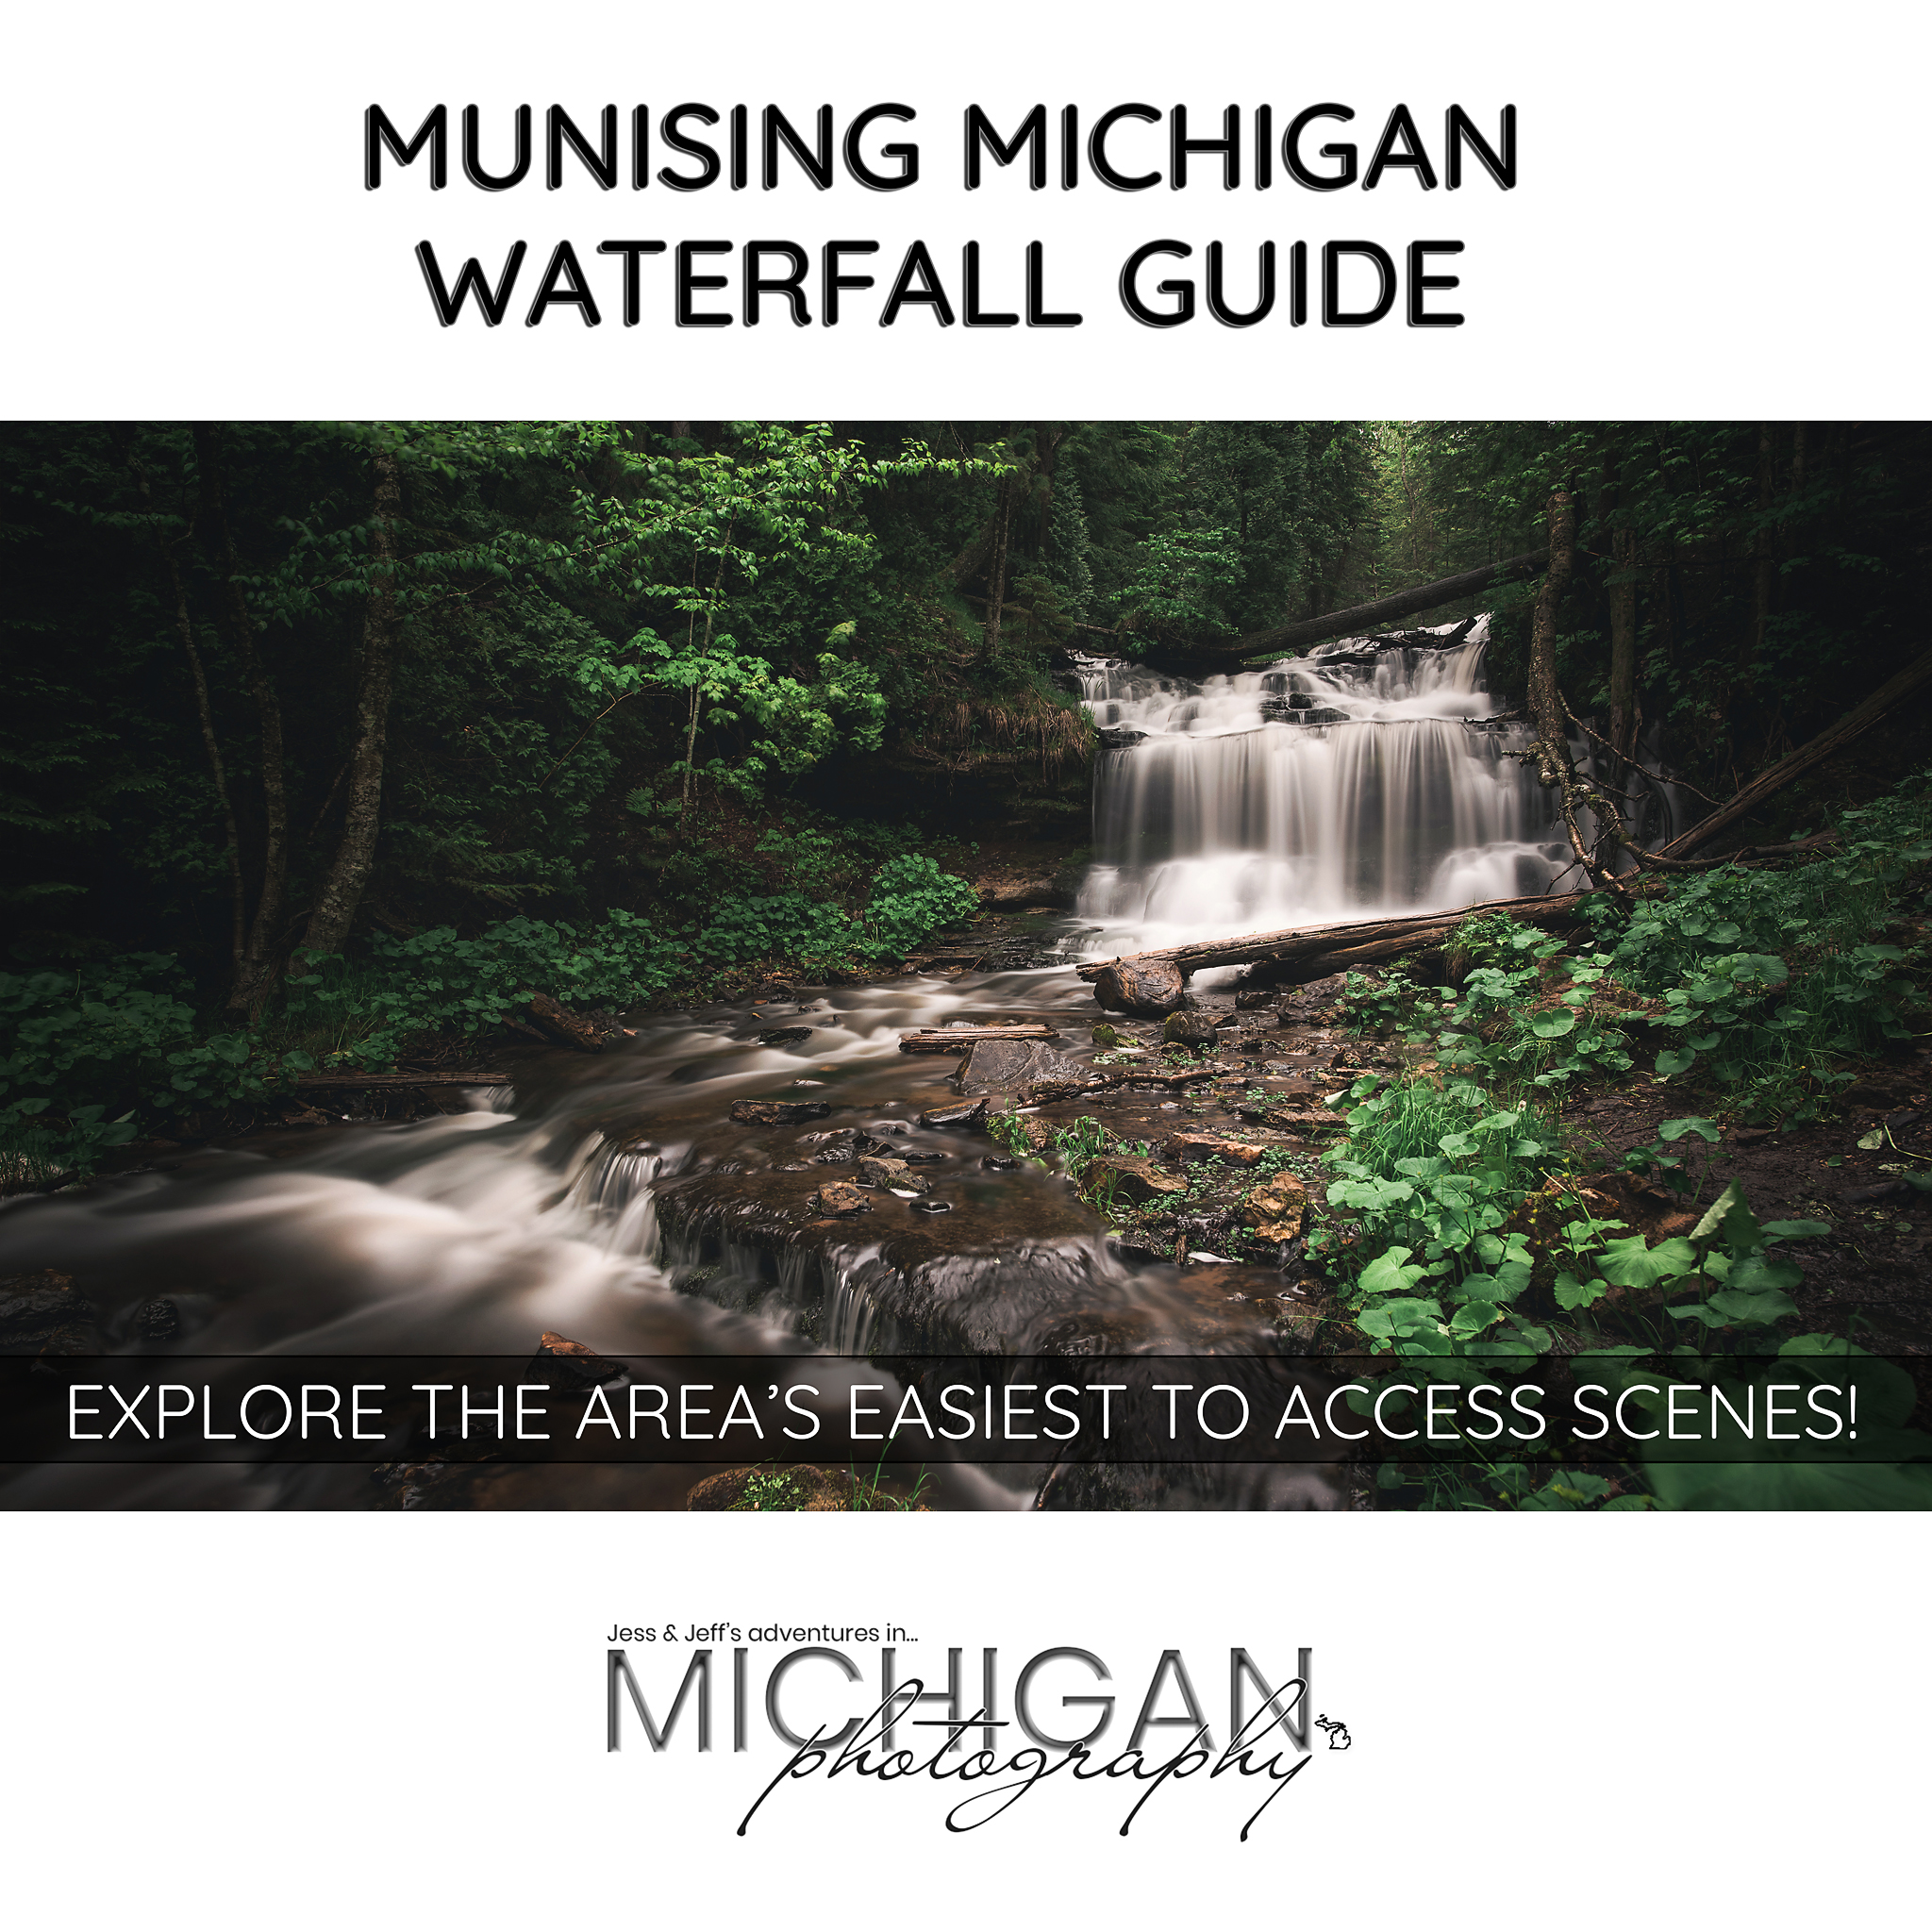 Our Munising Michigan Waterfall Guided Tour